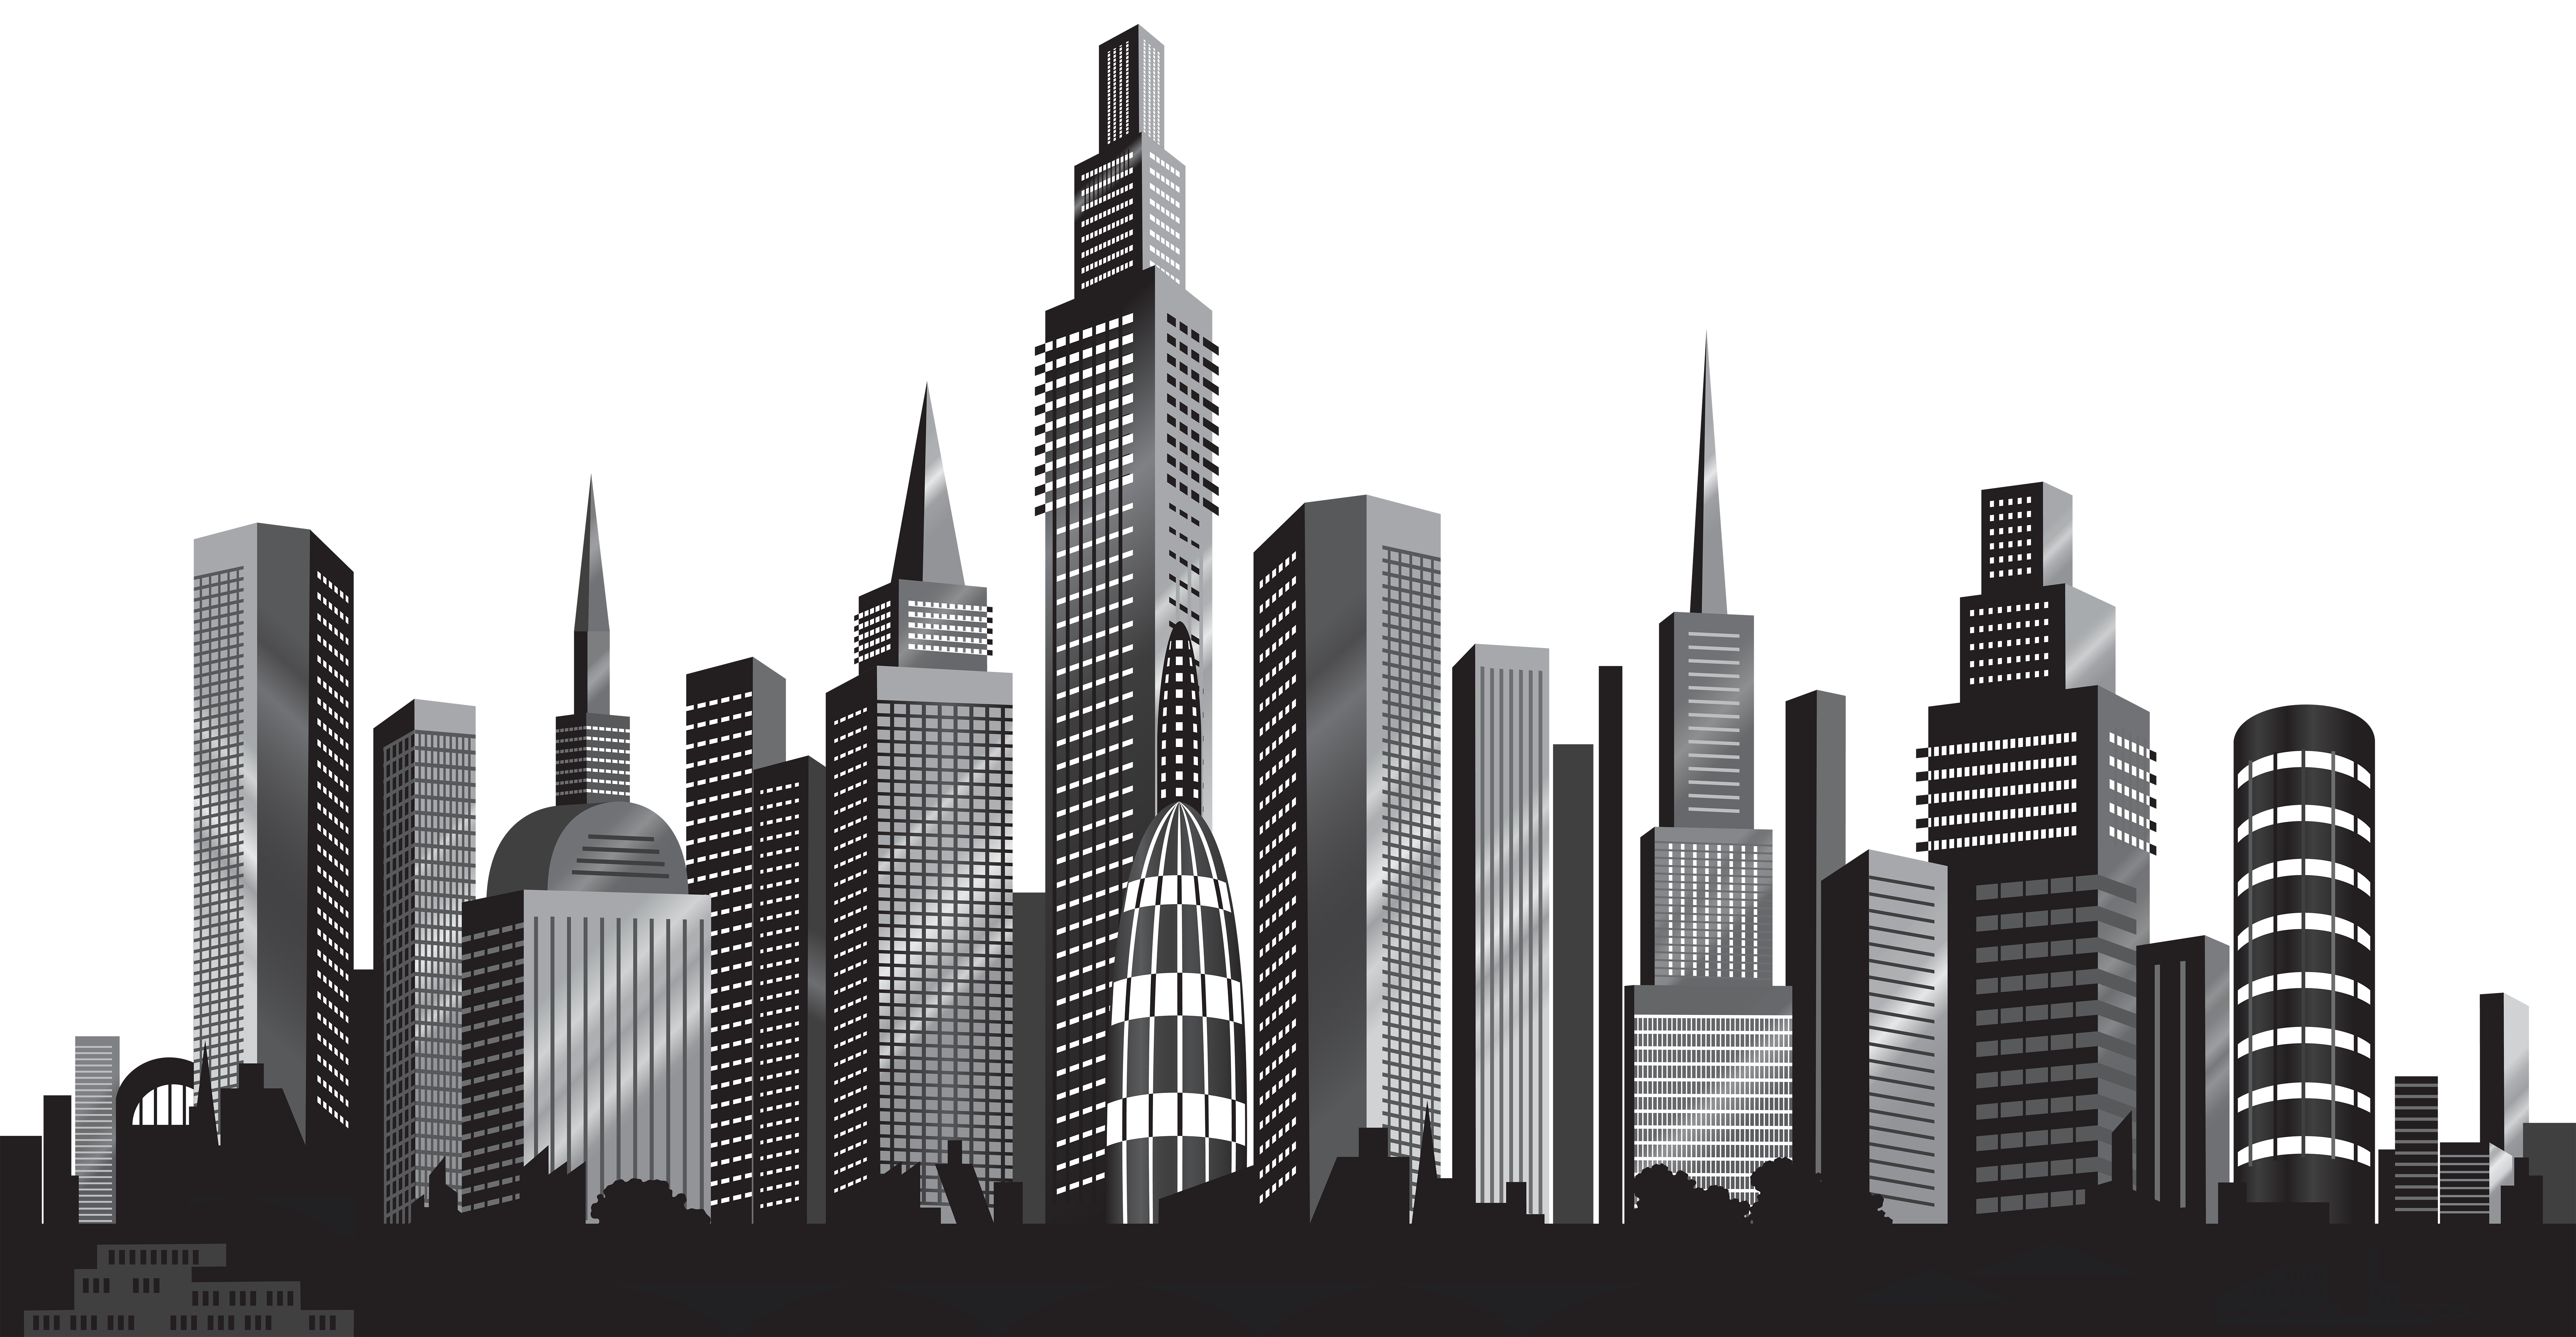 Cityscape Silhouette Png Clip Art Image Gallery Yopriceville High Quality Images And Transparent Png Free Cl Cityscape Silhouette Silhouette Png Cityscape